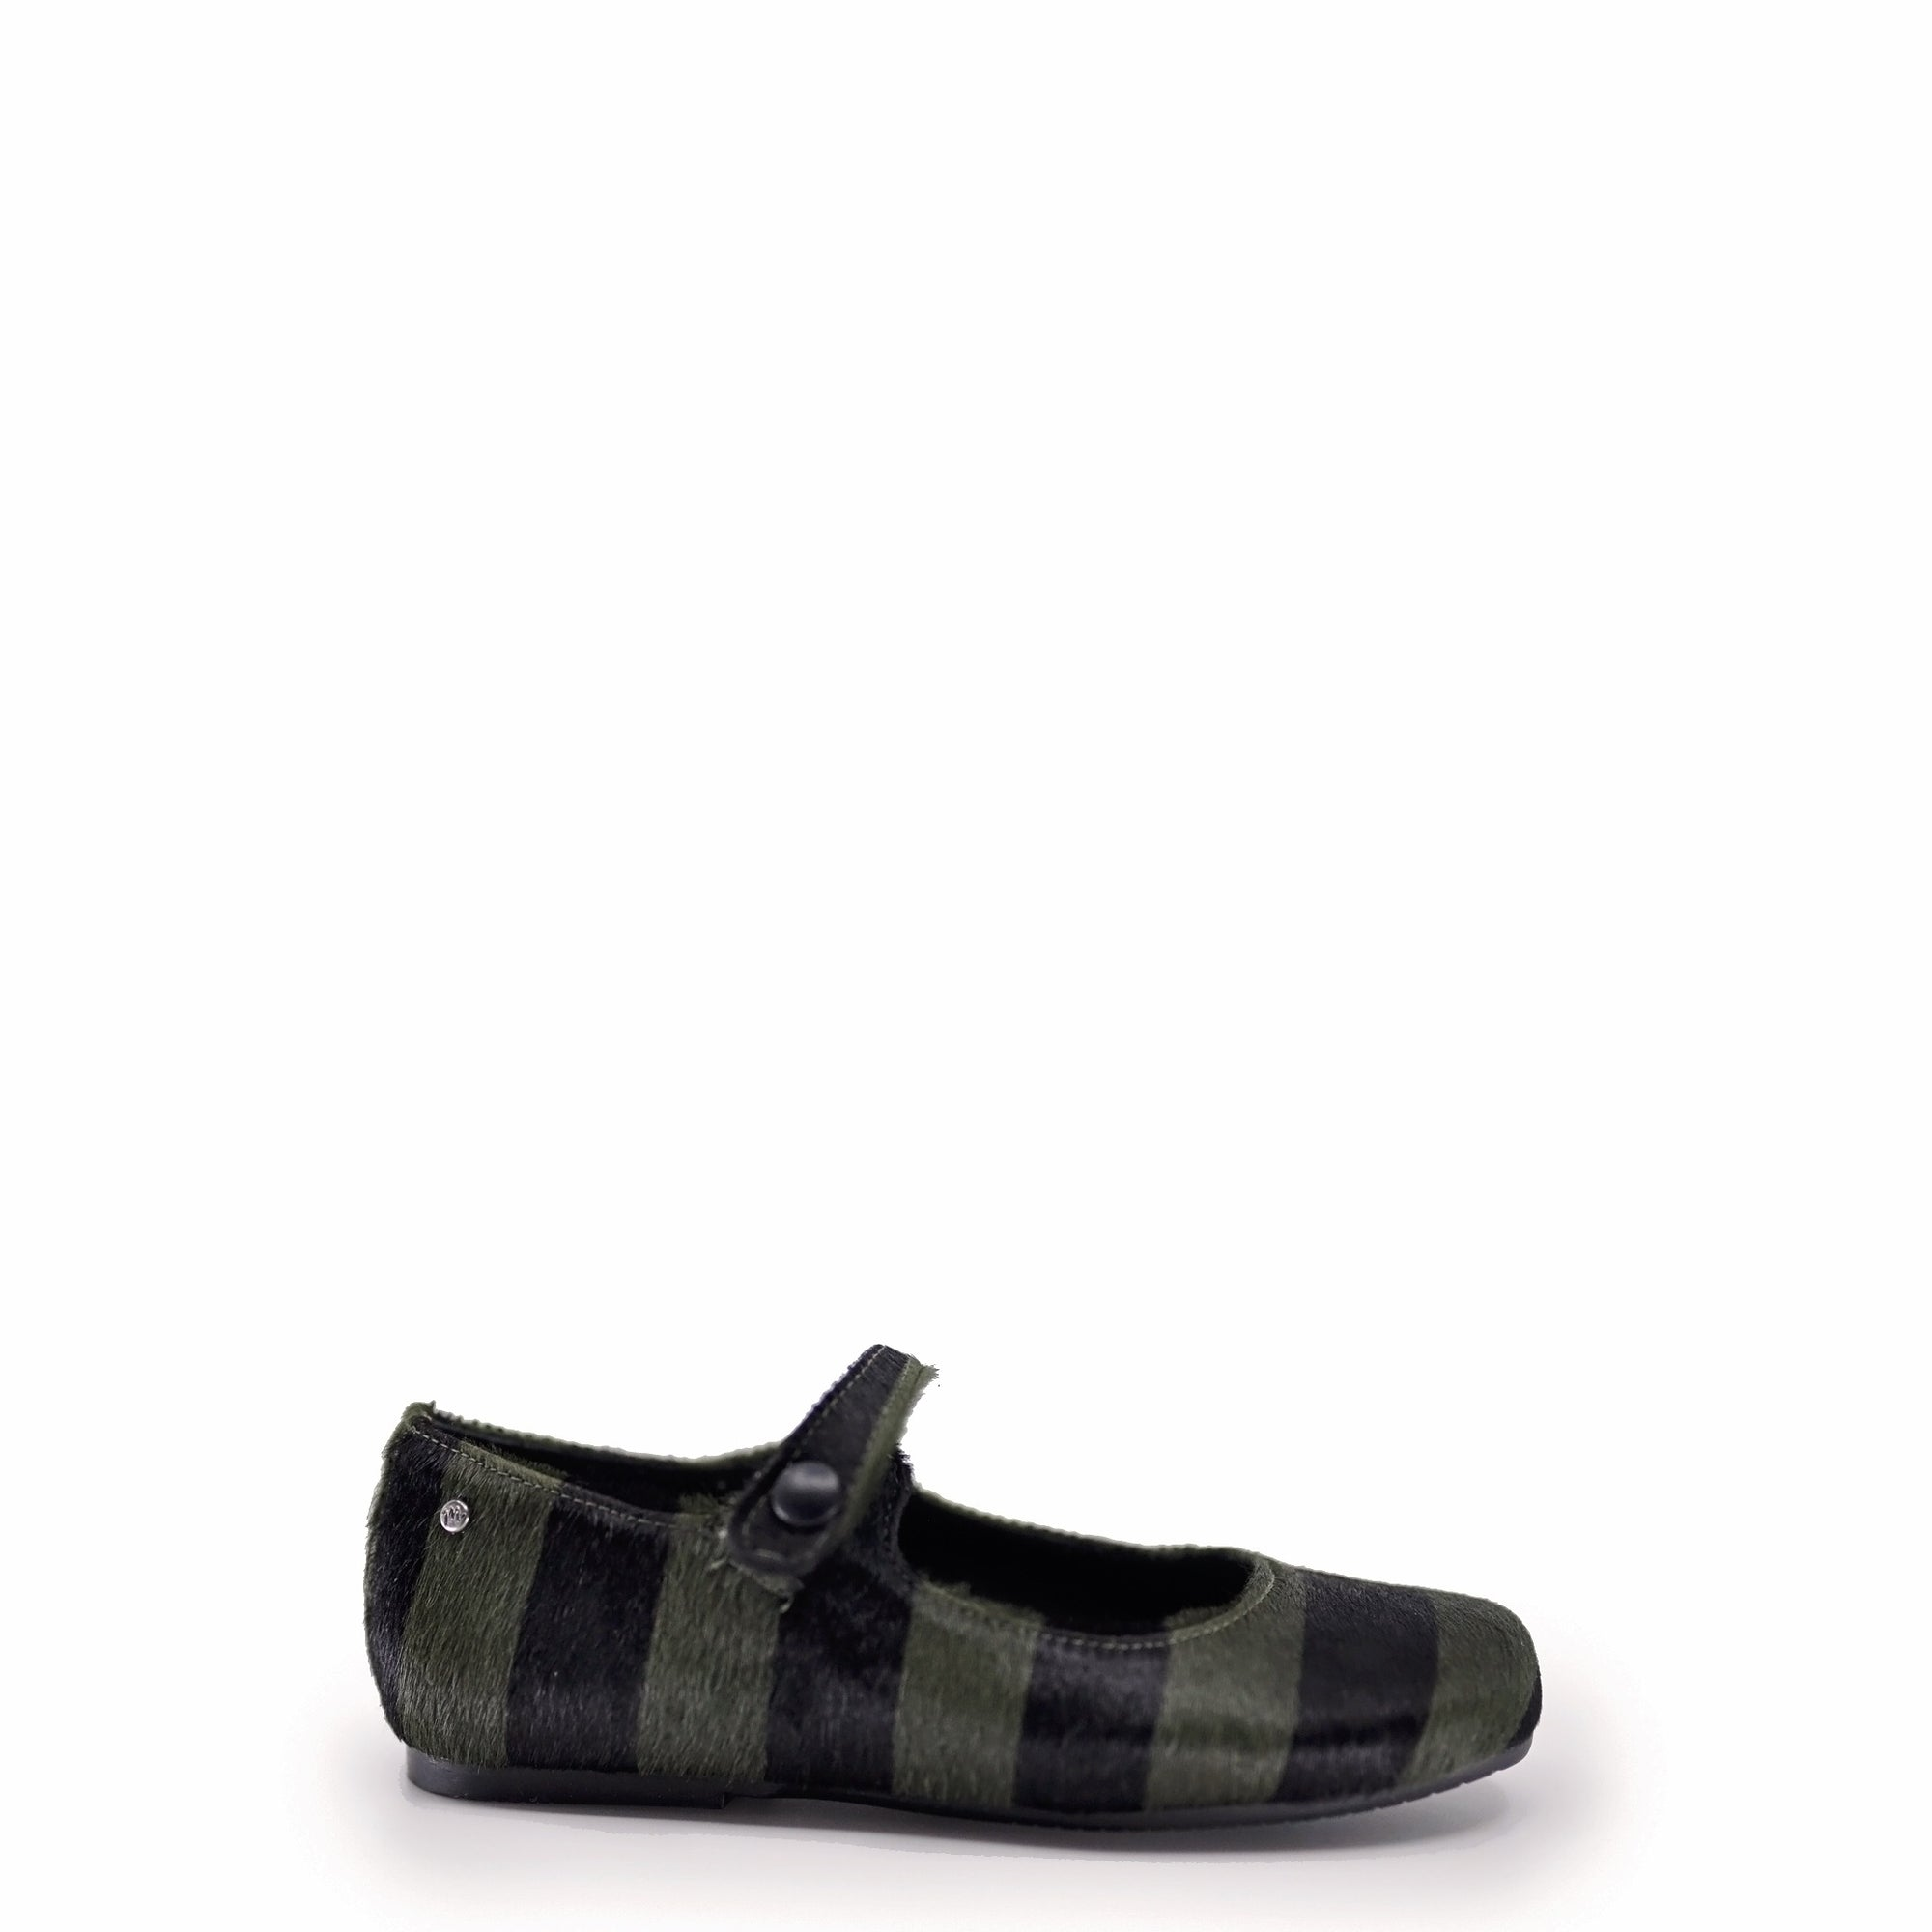 Manuela Green and Black Striped Pony Hair Mary Jane-Tassel Children Shoes